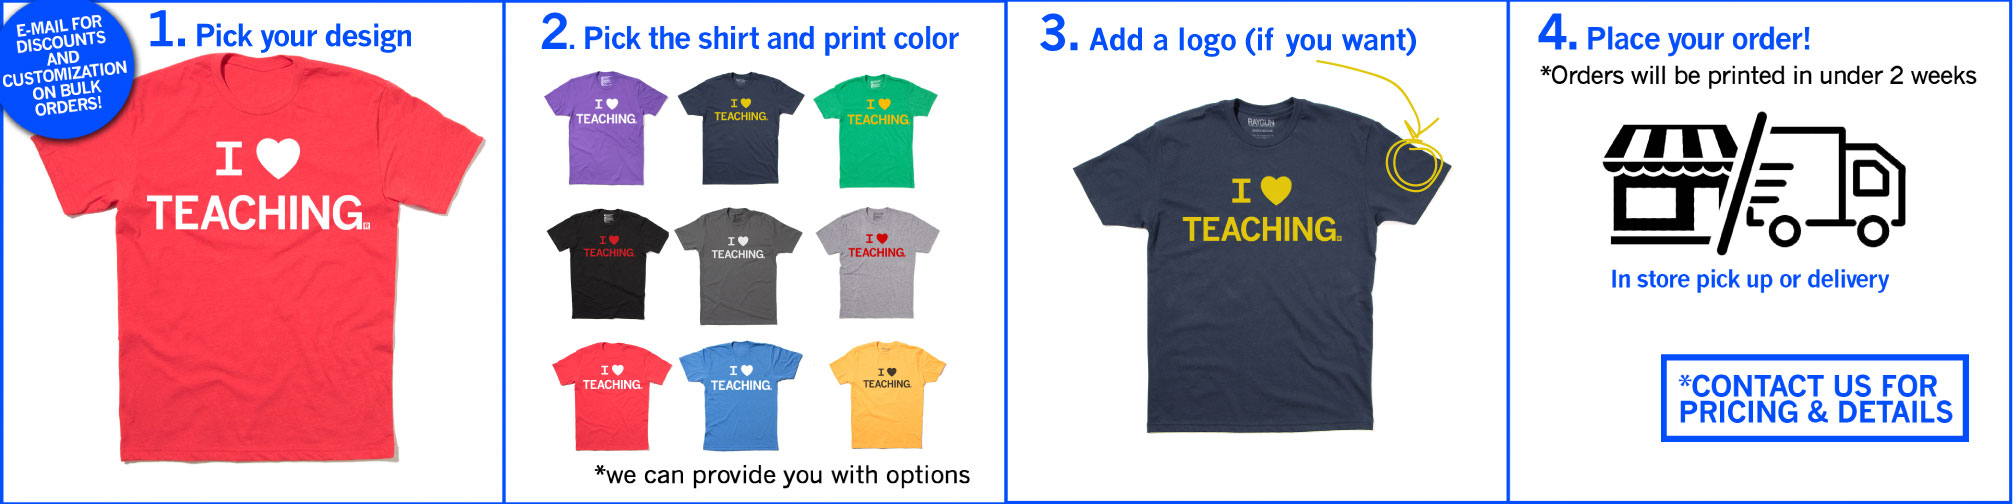 how to order custom teacher t-shirts